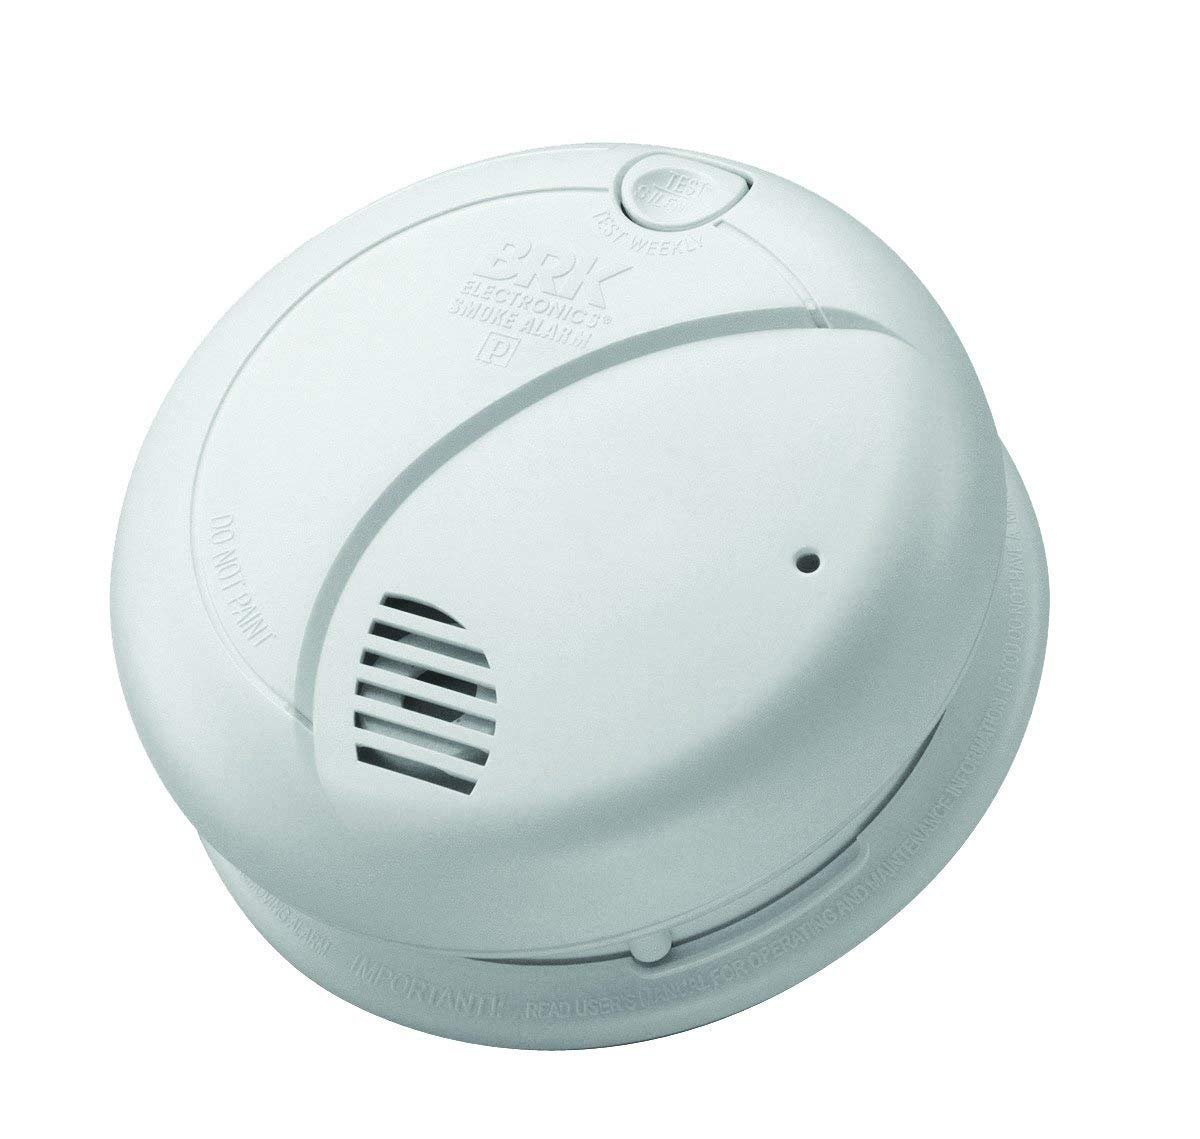 Brk 7010BE Optical Sensor - Smoke Detector (AC/Battery, 9 V ...